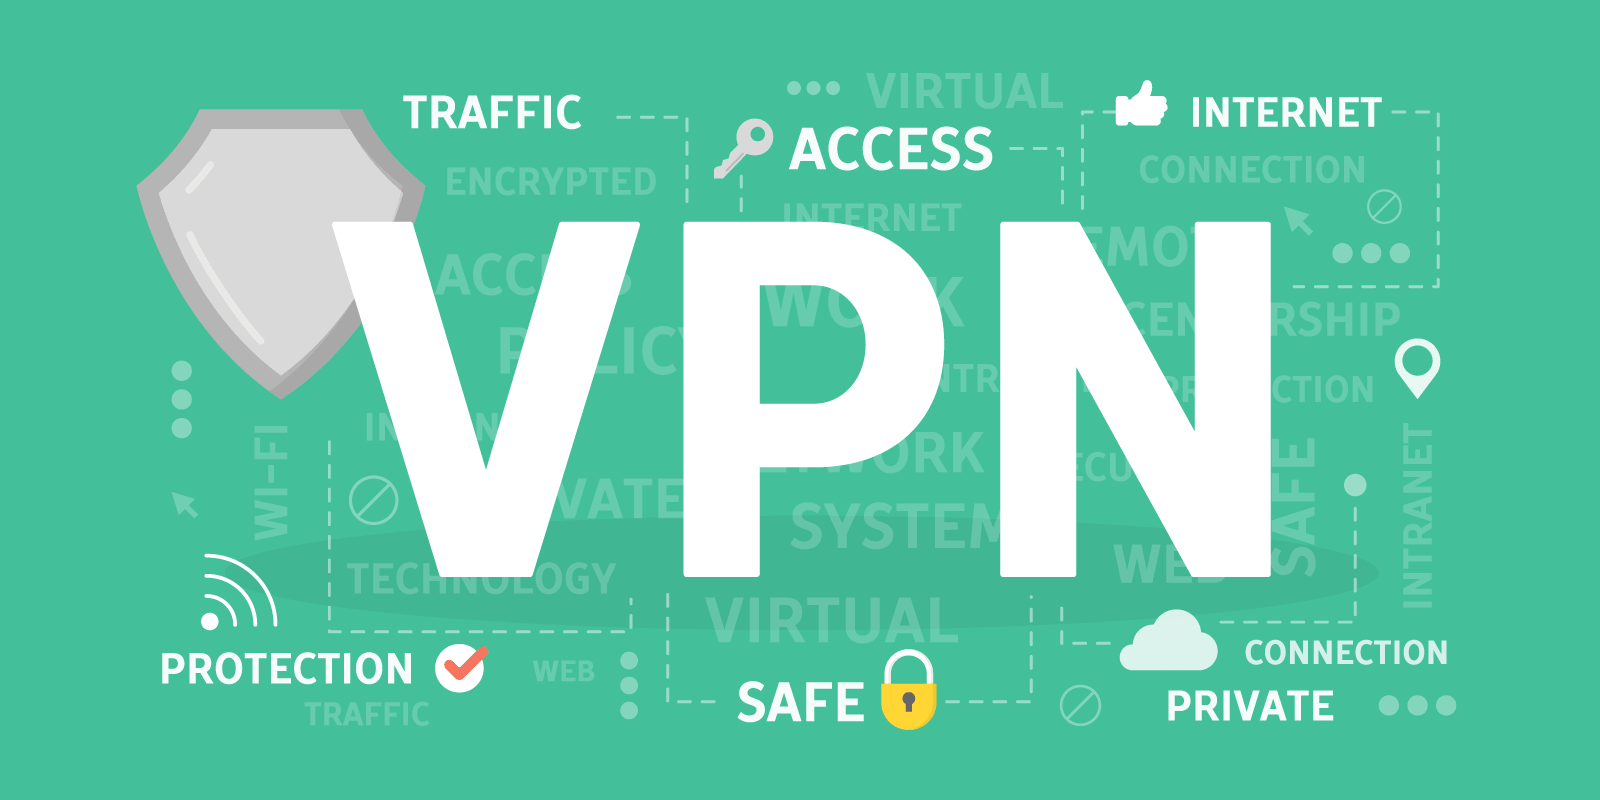 Ssl Vpn Vs Site To Site Vpn